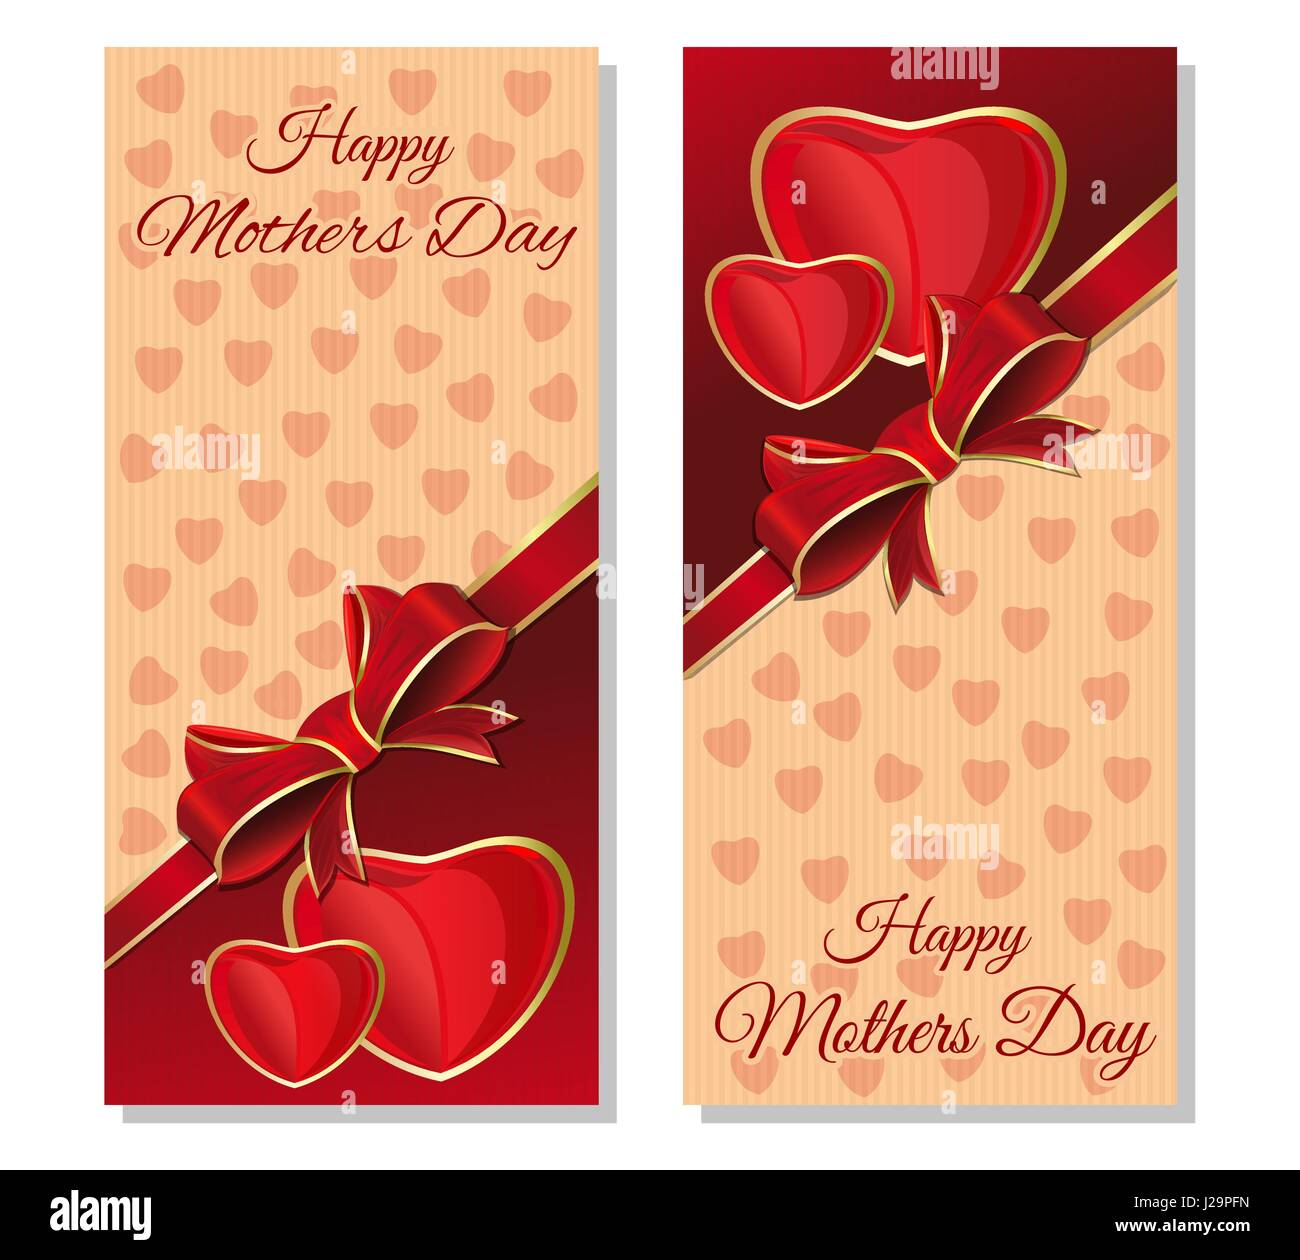 Happy mothers day greeting cards set festive red and beige stock happy mothers day greeting cards set festive red and beige background with design elements for mothers day vector flyer template kristyandbryce Image collections